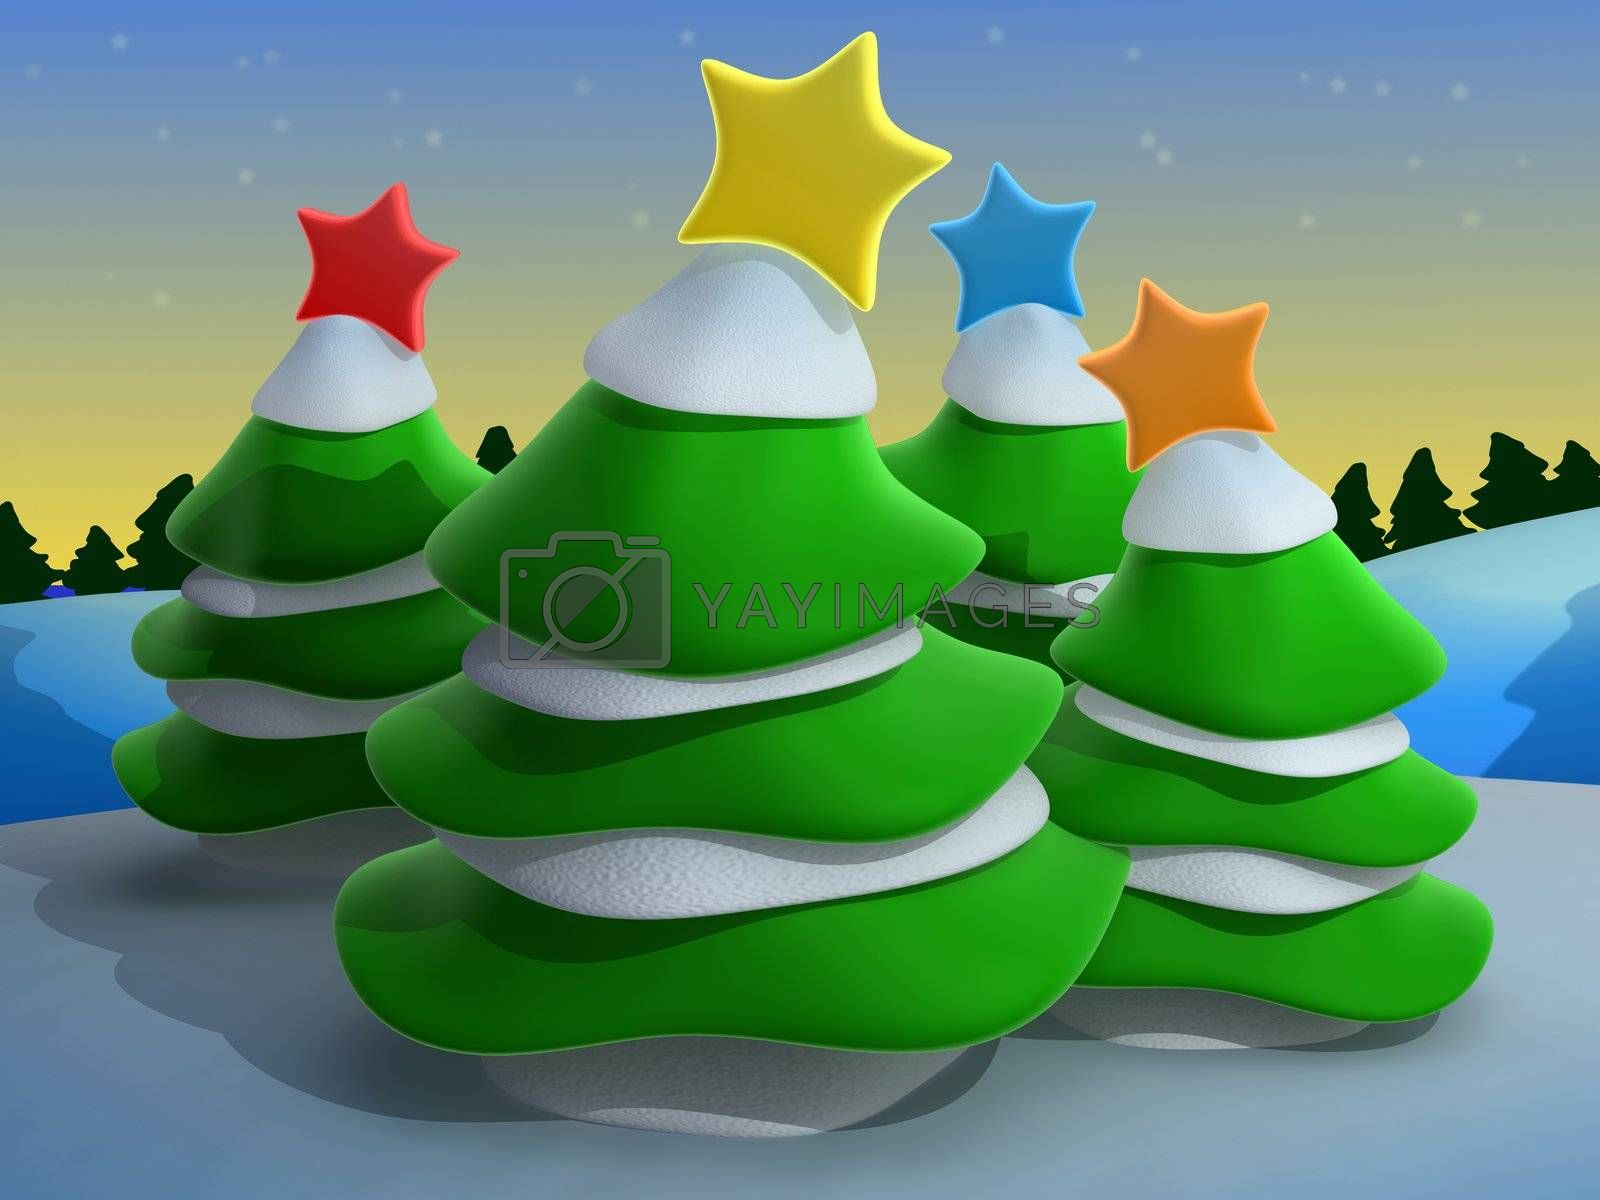 Computer Generated Image - Christmas Scenery .